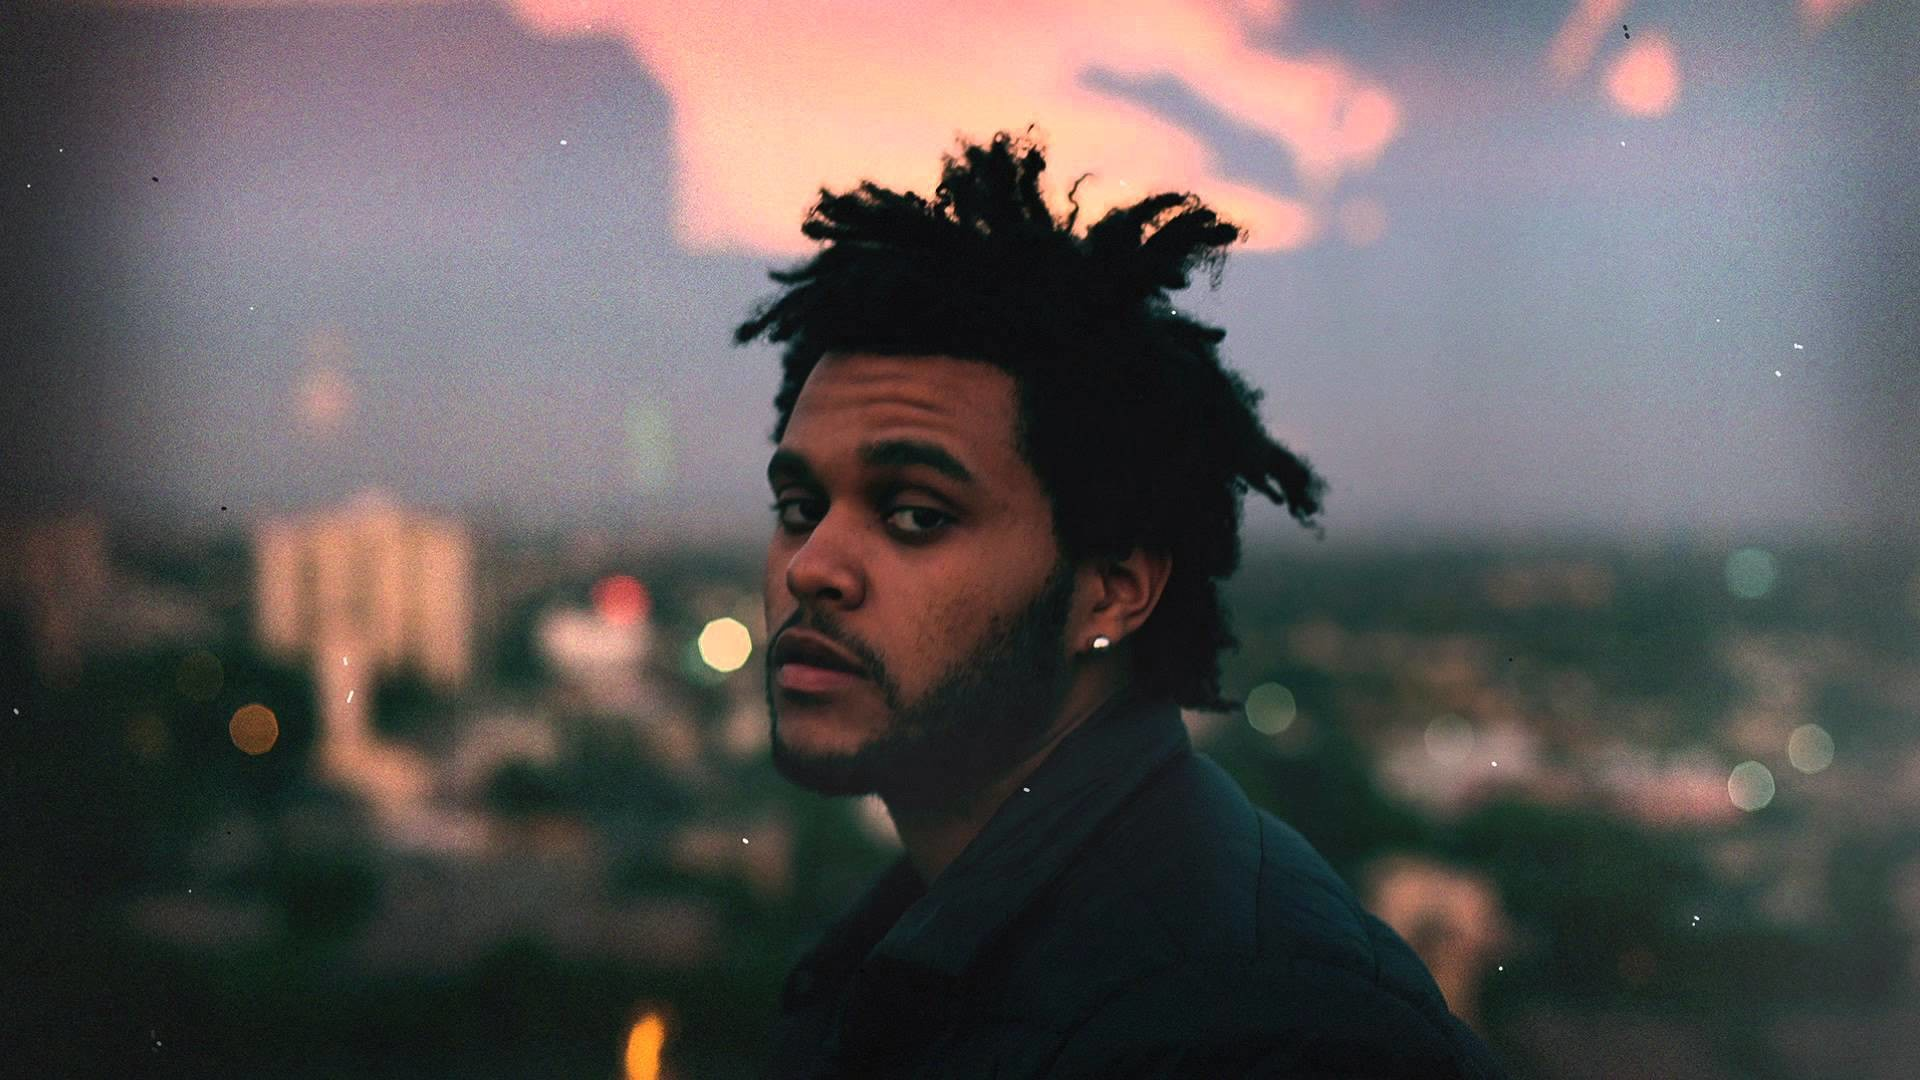 The Weeknd Hd Wallpaper 79 Images